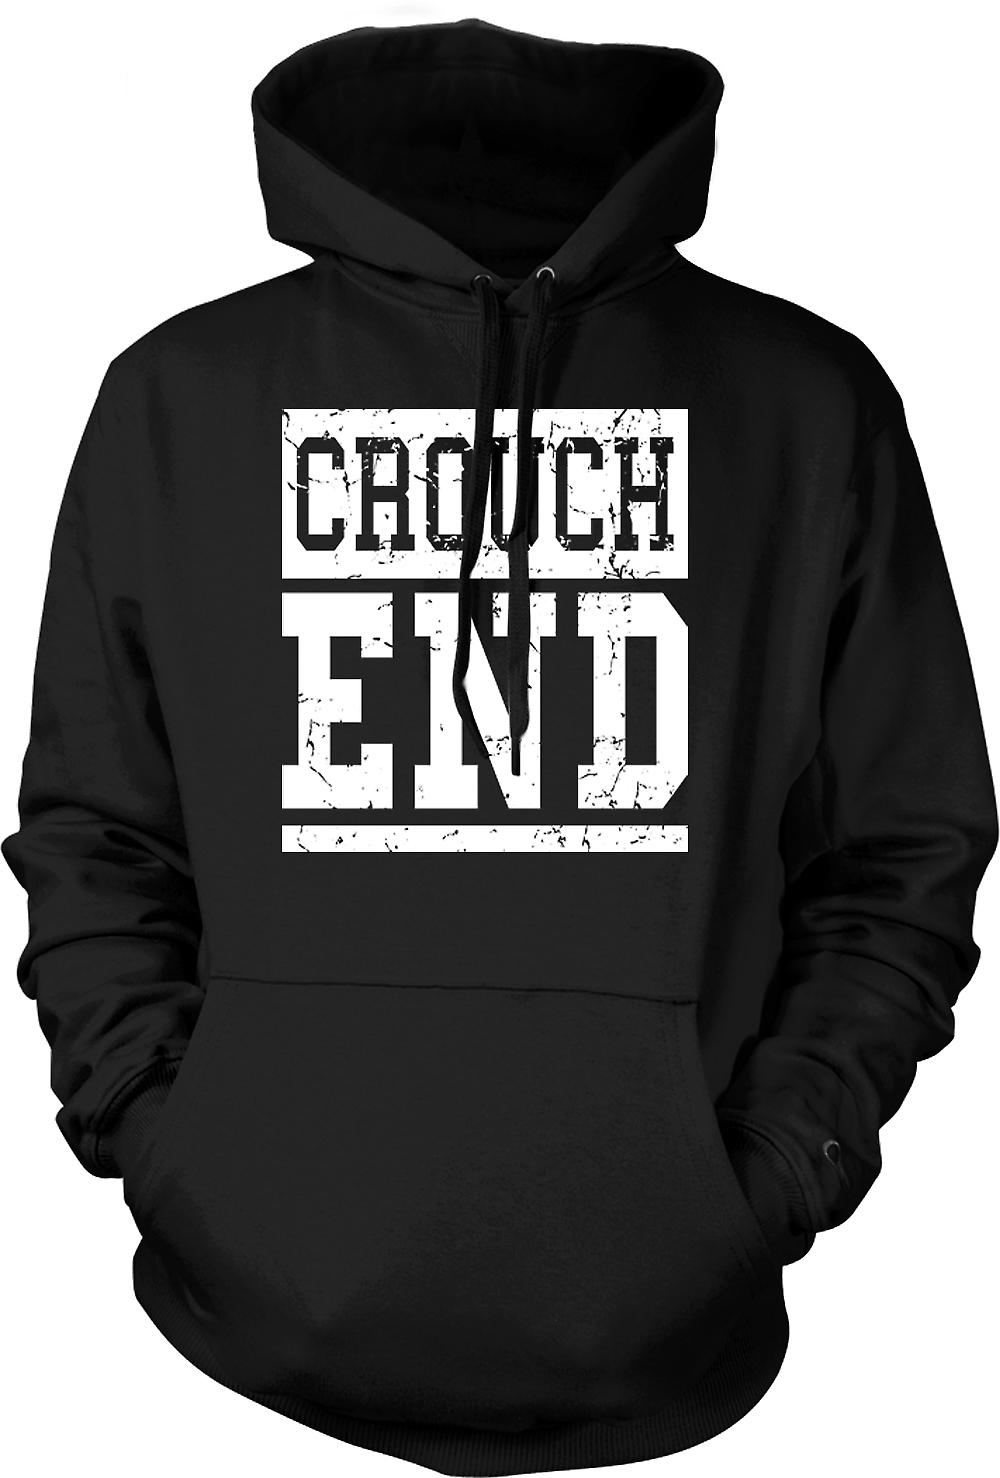 Mens Hoodie - Crouch End - Cool Funny London as worn by Simon Pegg